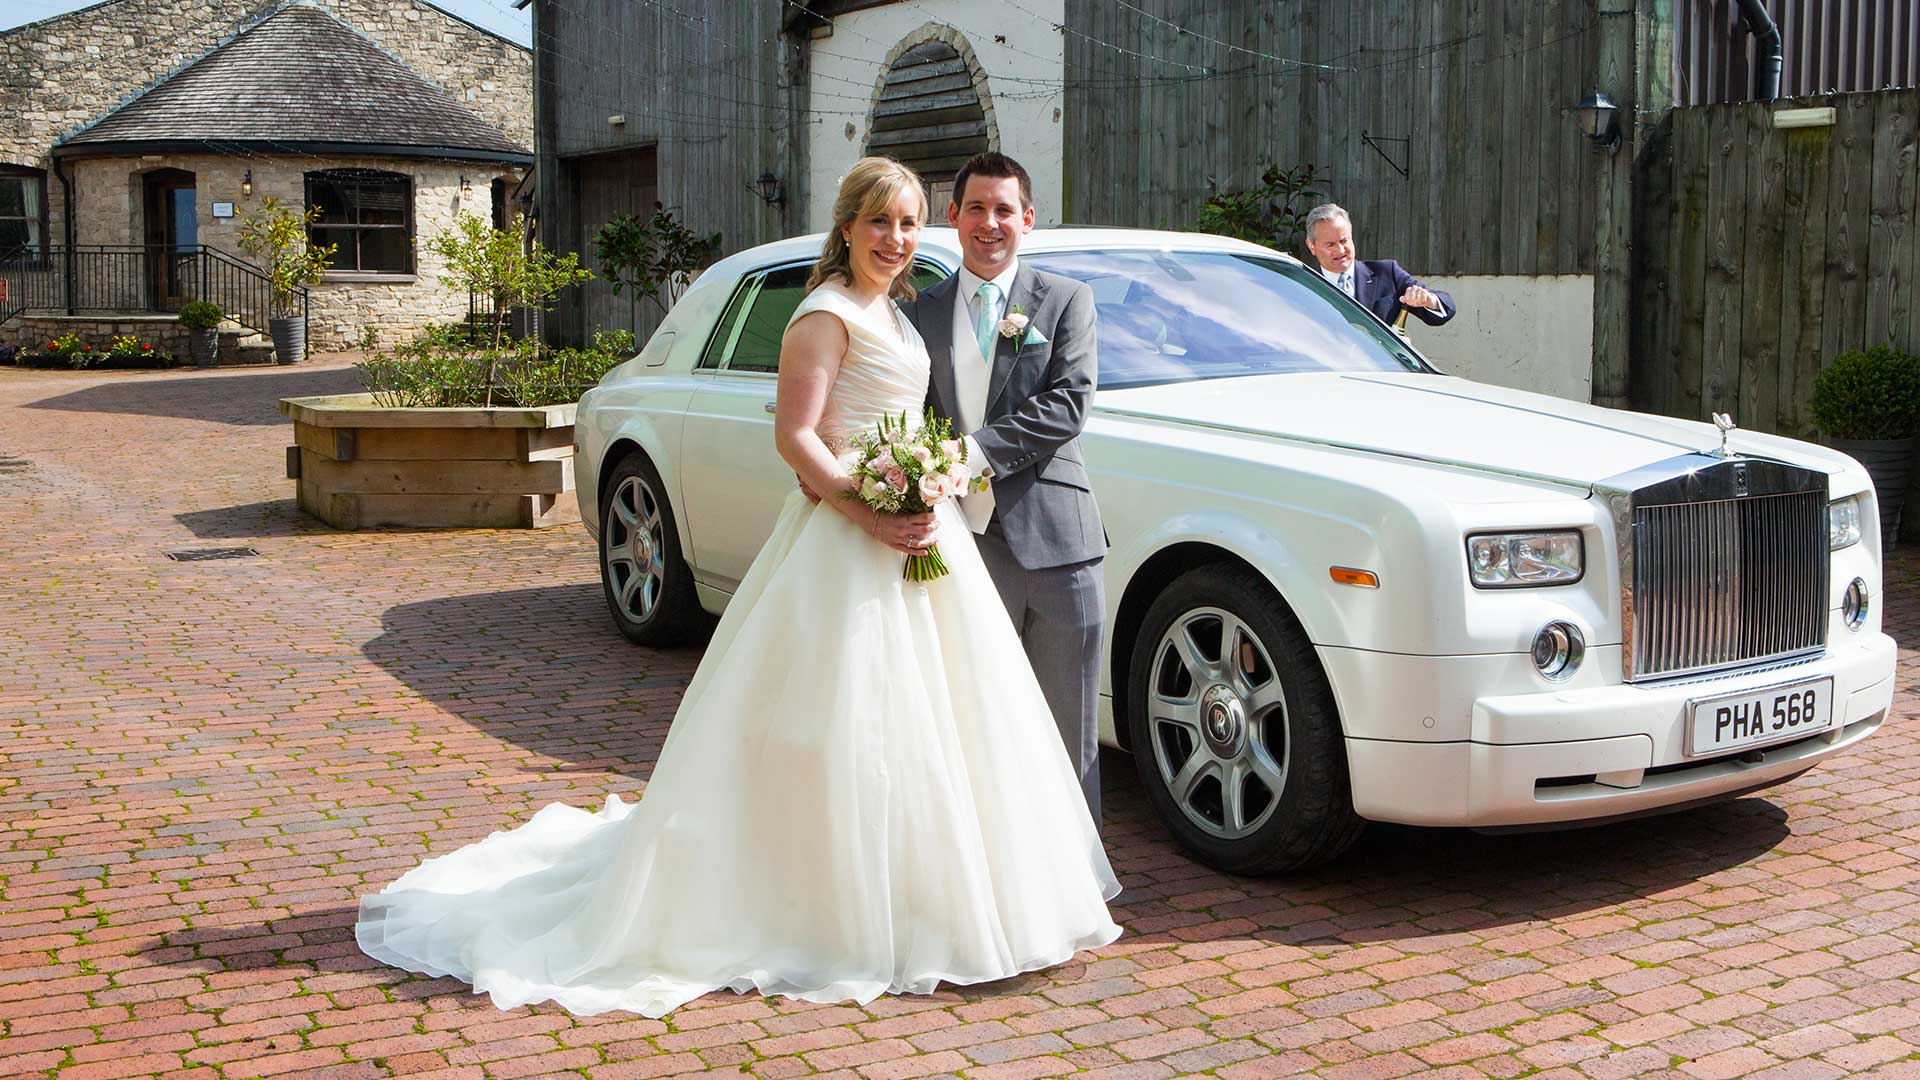 Newly-wed couple Mr and Mrs Bracher with the Rolls-Royce Phantom